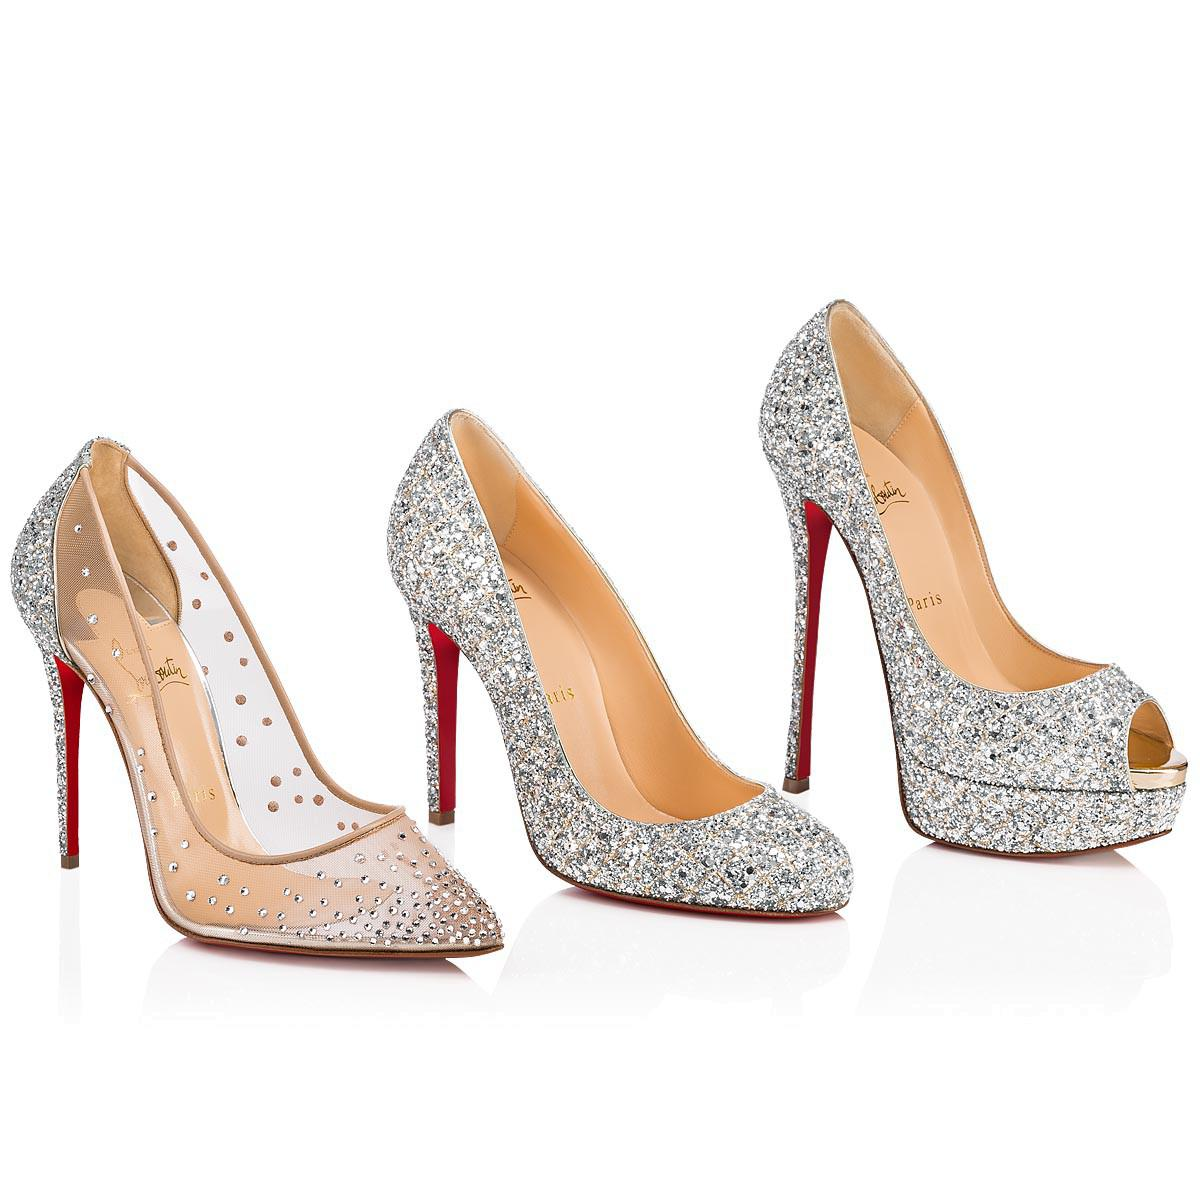 a52e2d2a43f Lyst - Christian Louboutin Fifille in Metallic